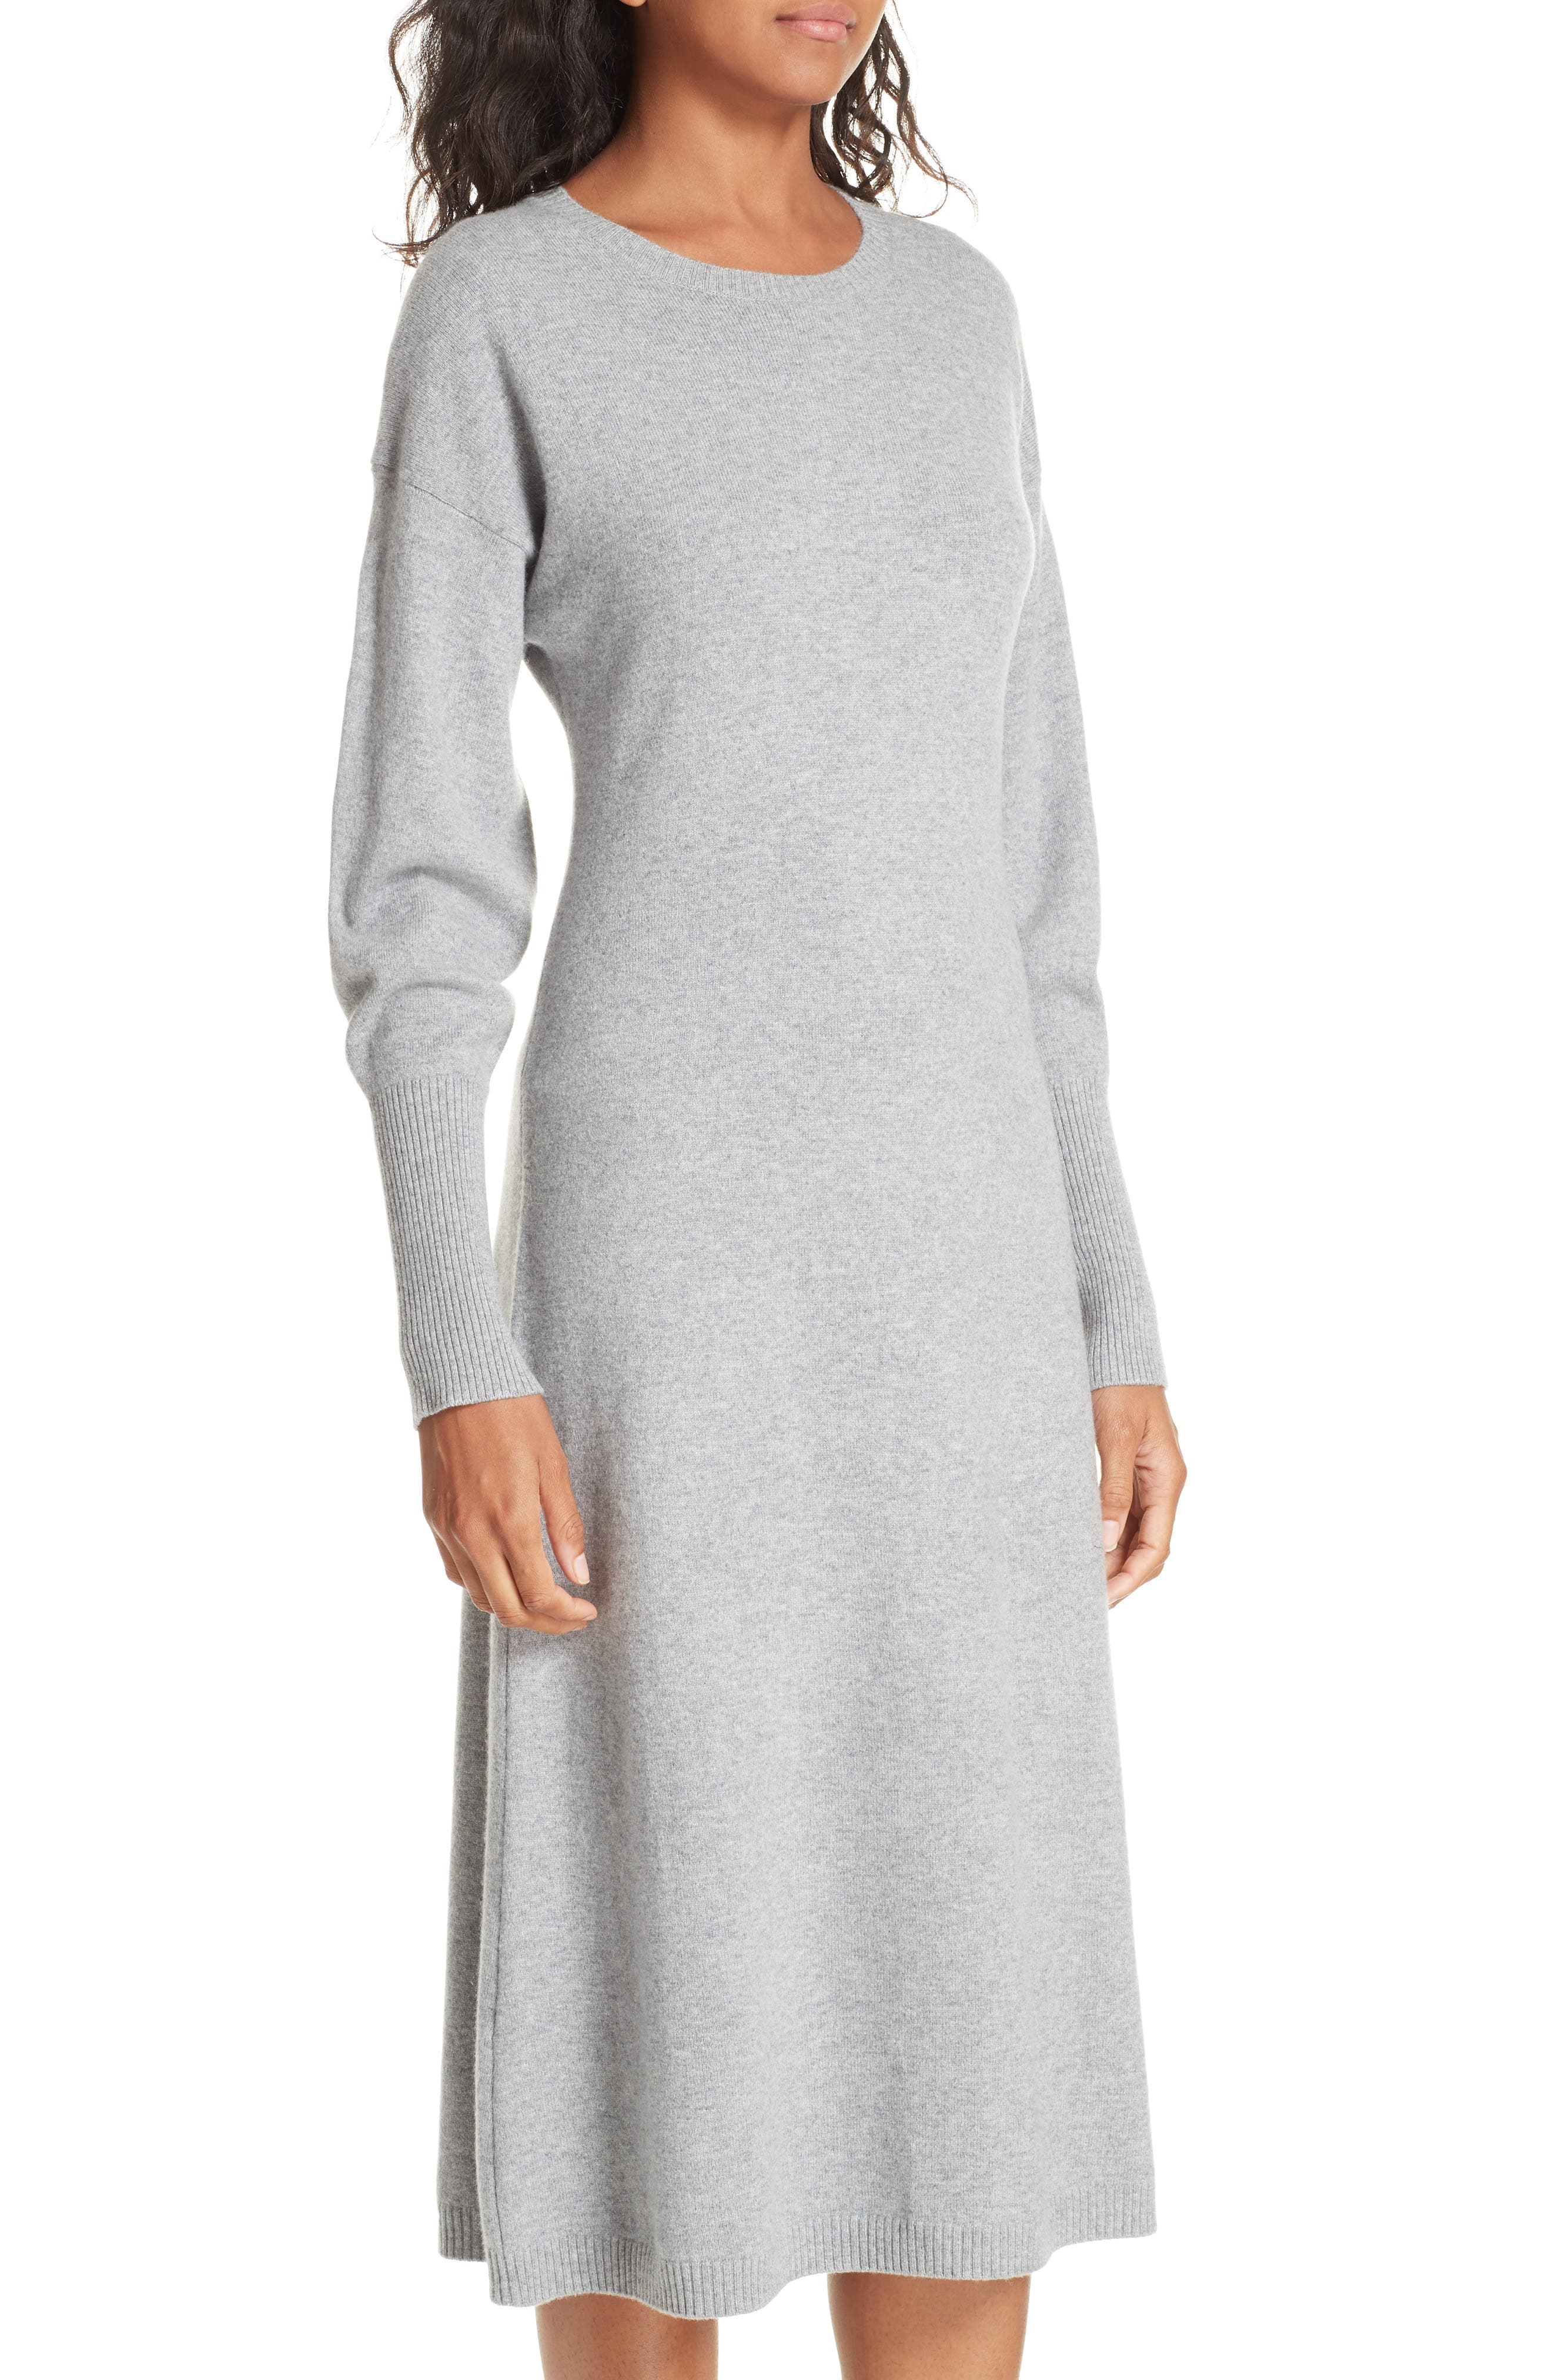 Cashmere Blend Sweater Dress,                             Alternate thumbnail 4, color,                             030